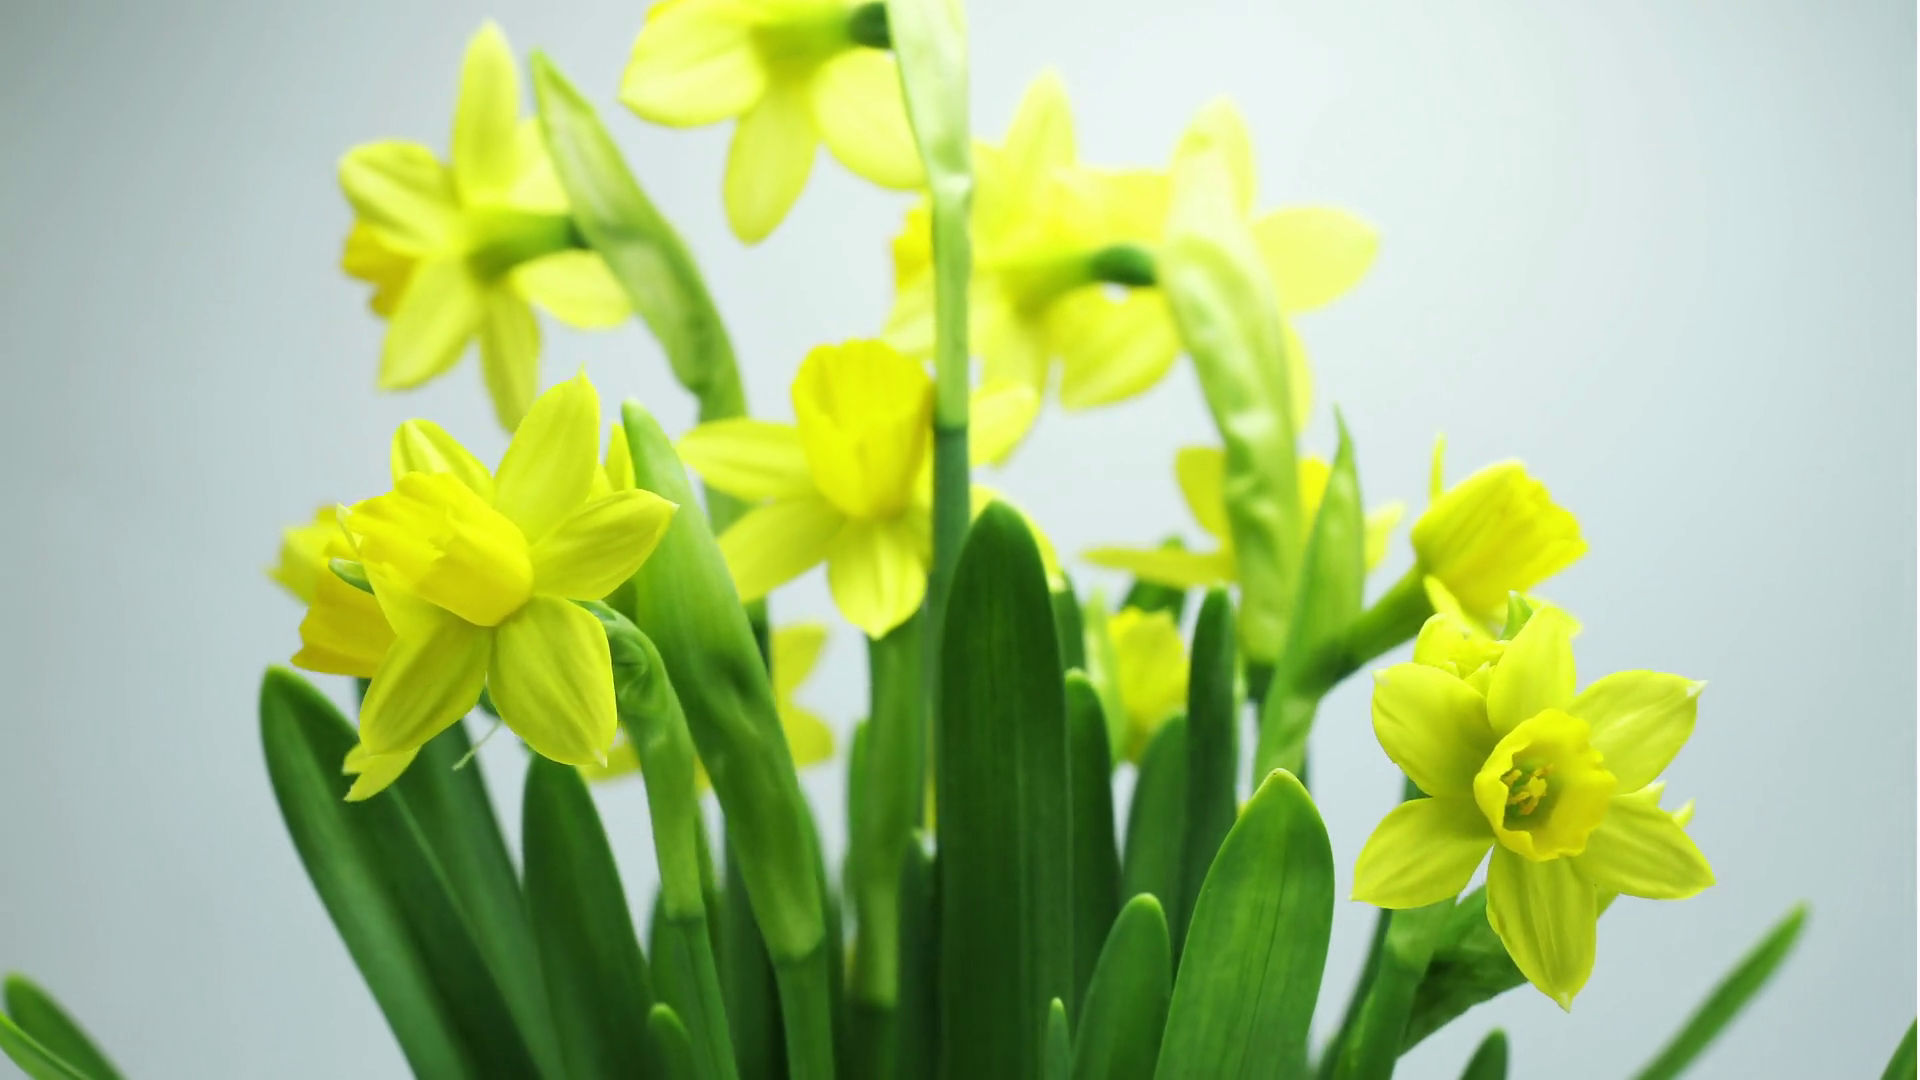 A bunch of Daffodils blooming Time-Lapse Stock Video Footage ...